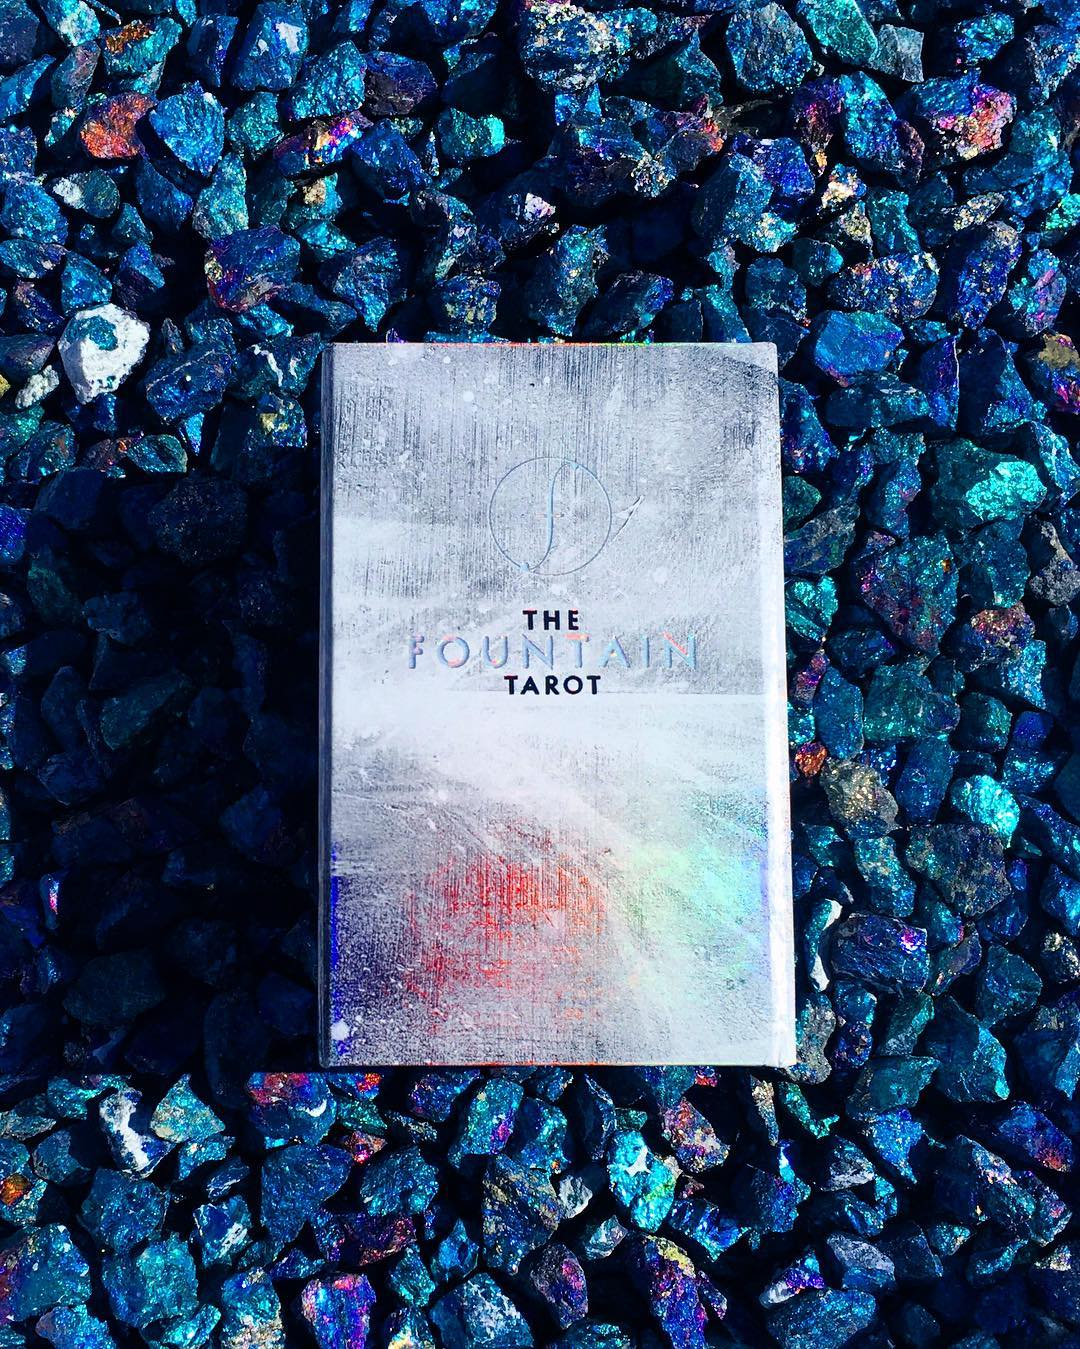 The Fountain Tarot deck will add a double dose of beauty and magic to your daily practice